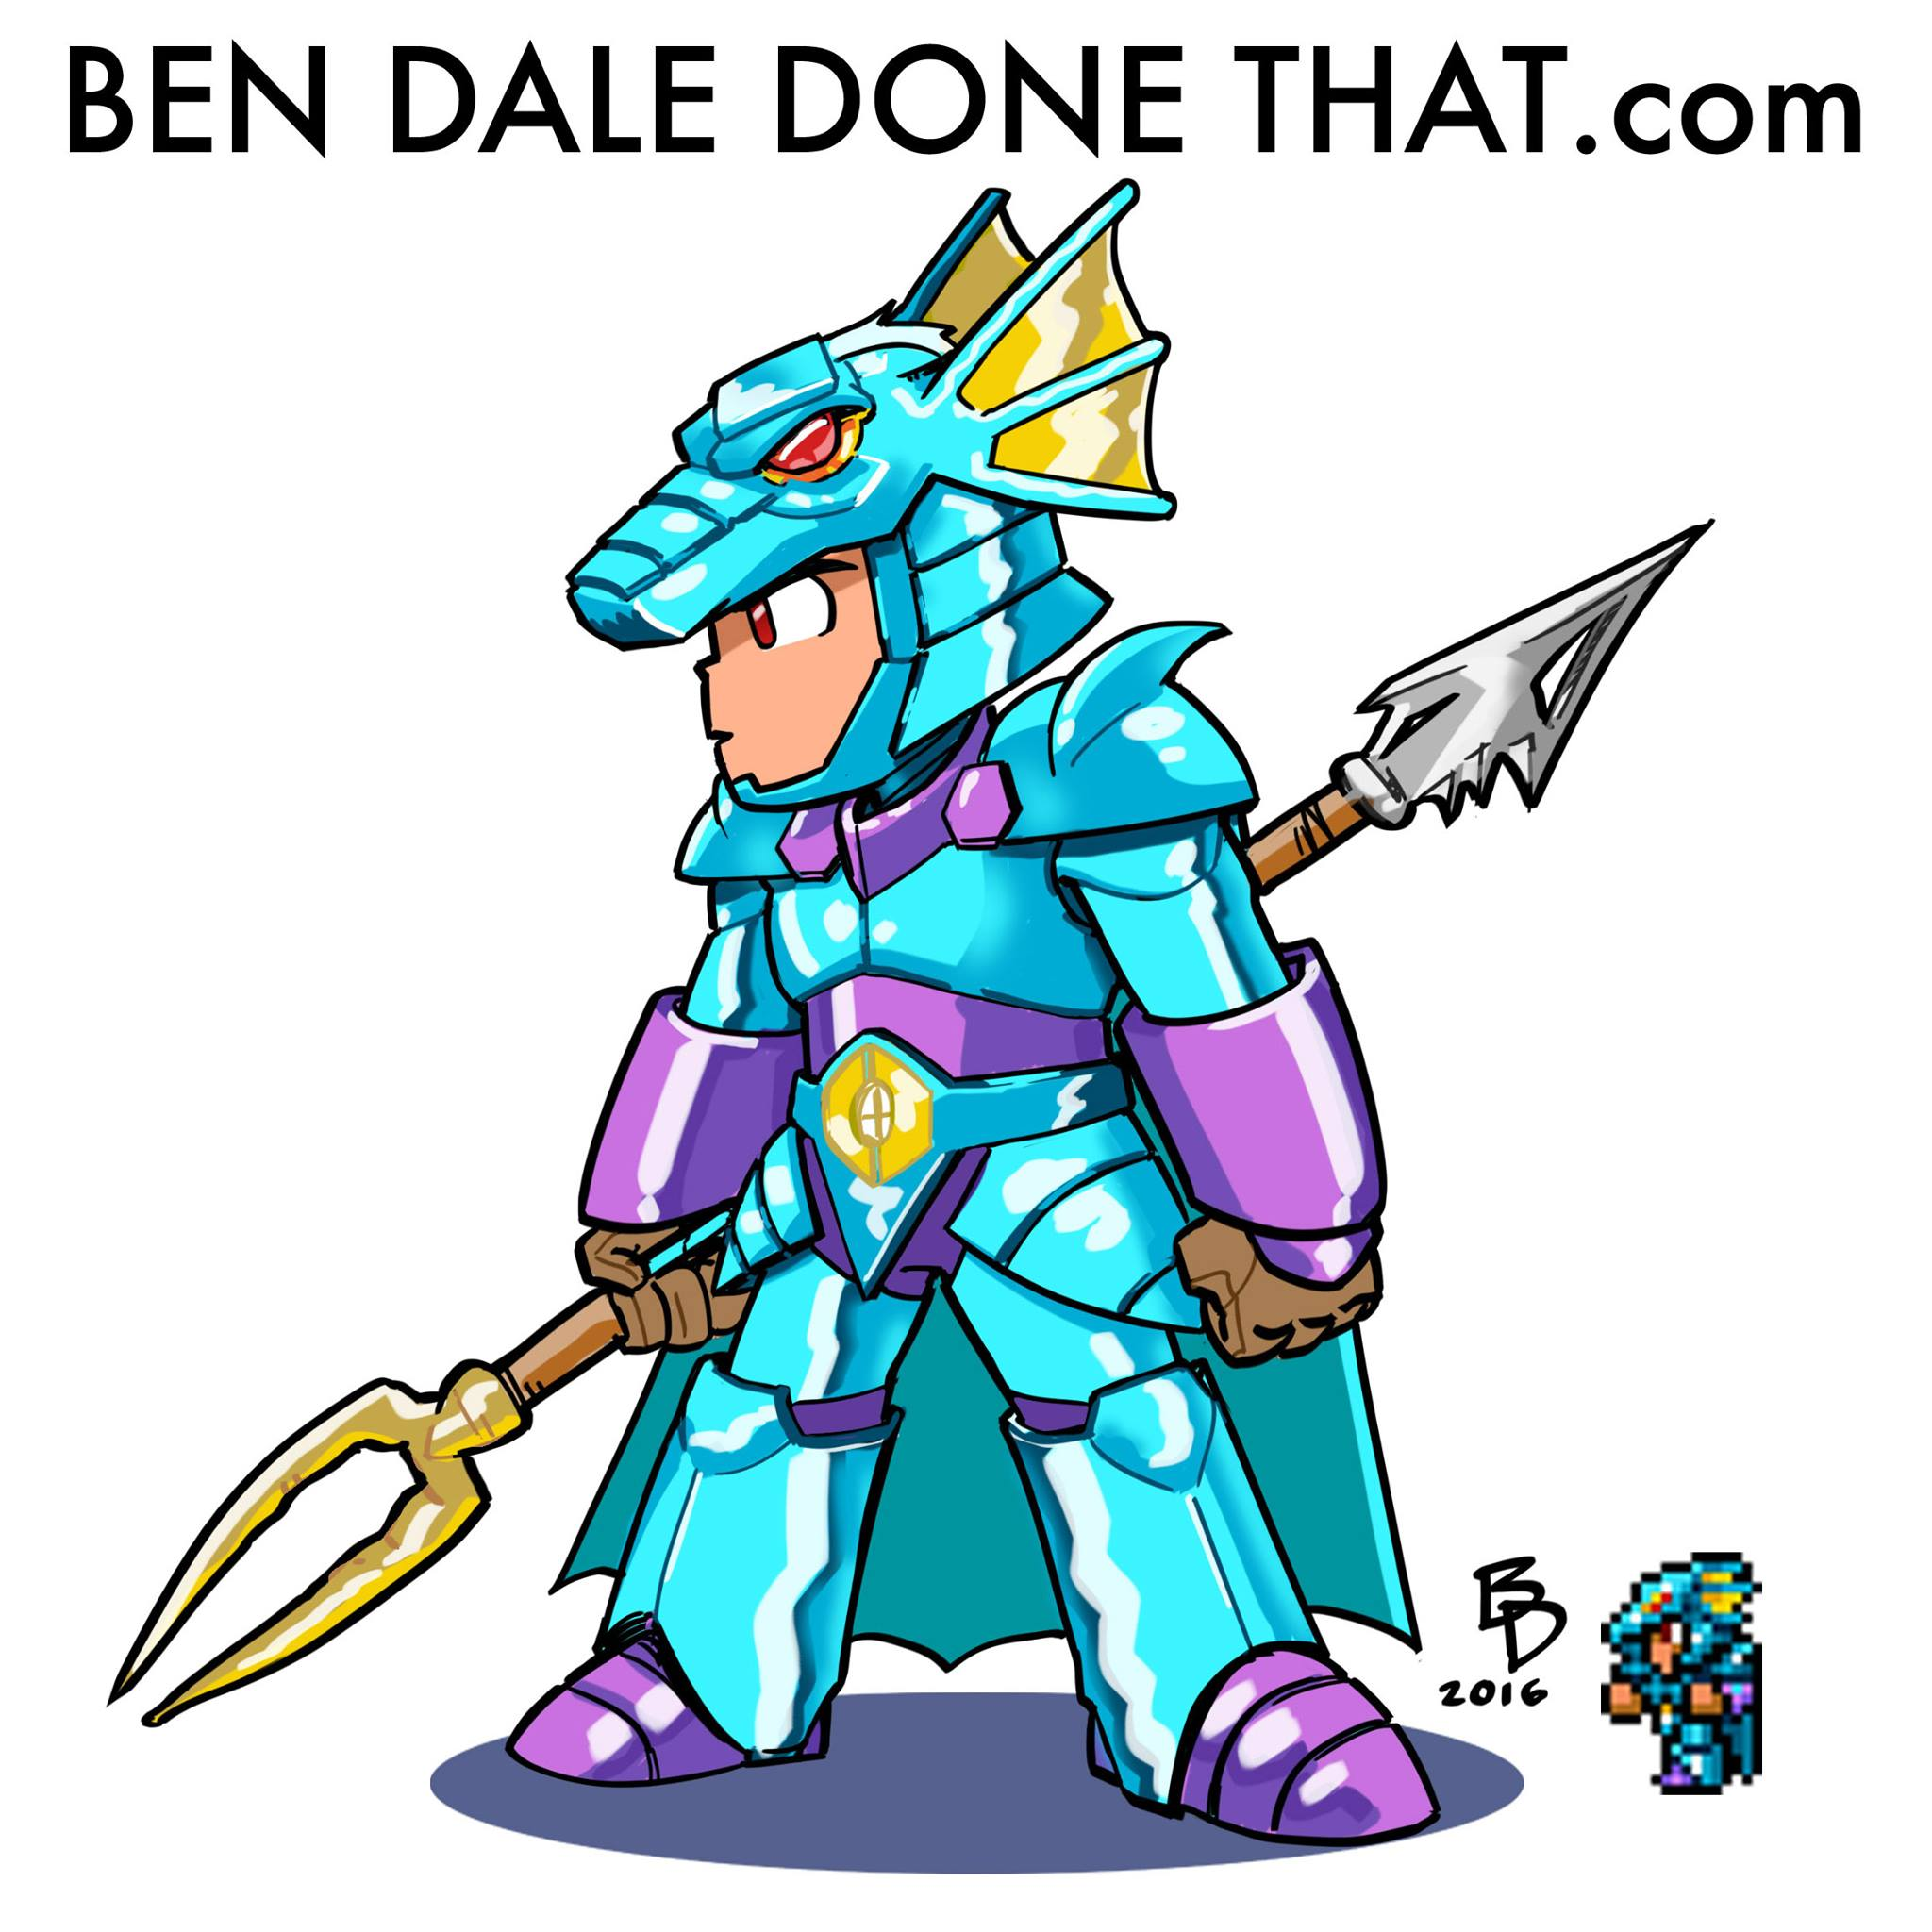 Drawtober 16 Kain The Dragoon From Final Fantasy 2 Ben Dale Done That This set of armor provides the option of a more refined and knightly approach to wearing the bones of dragons. drawtober 16 kain the dragoon from